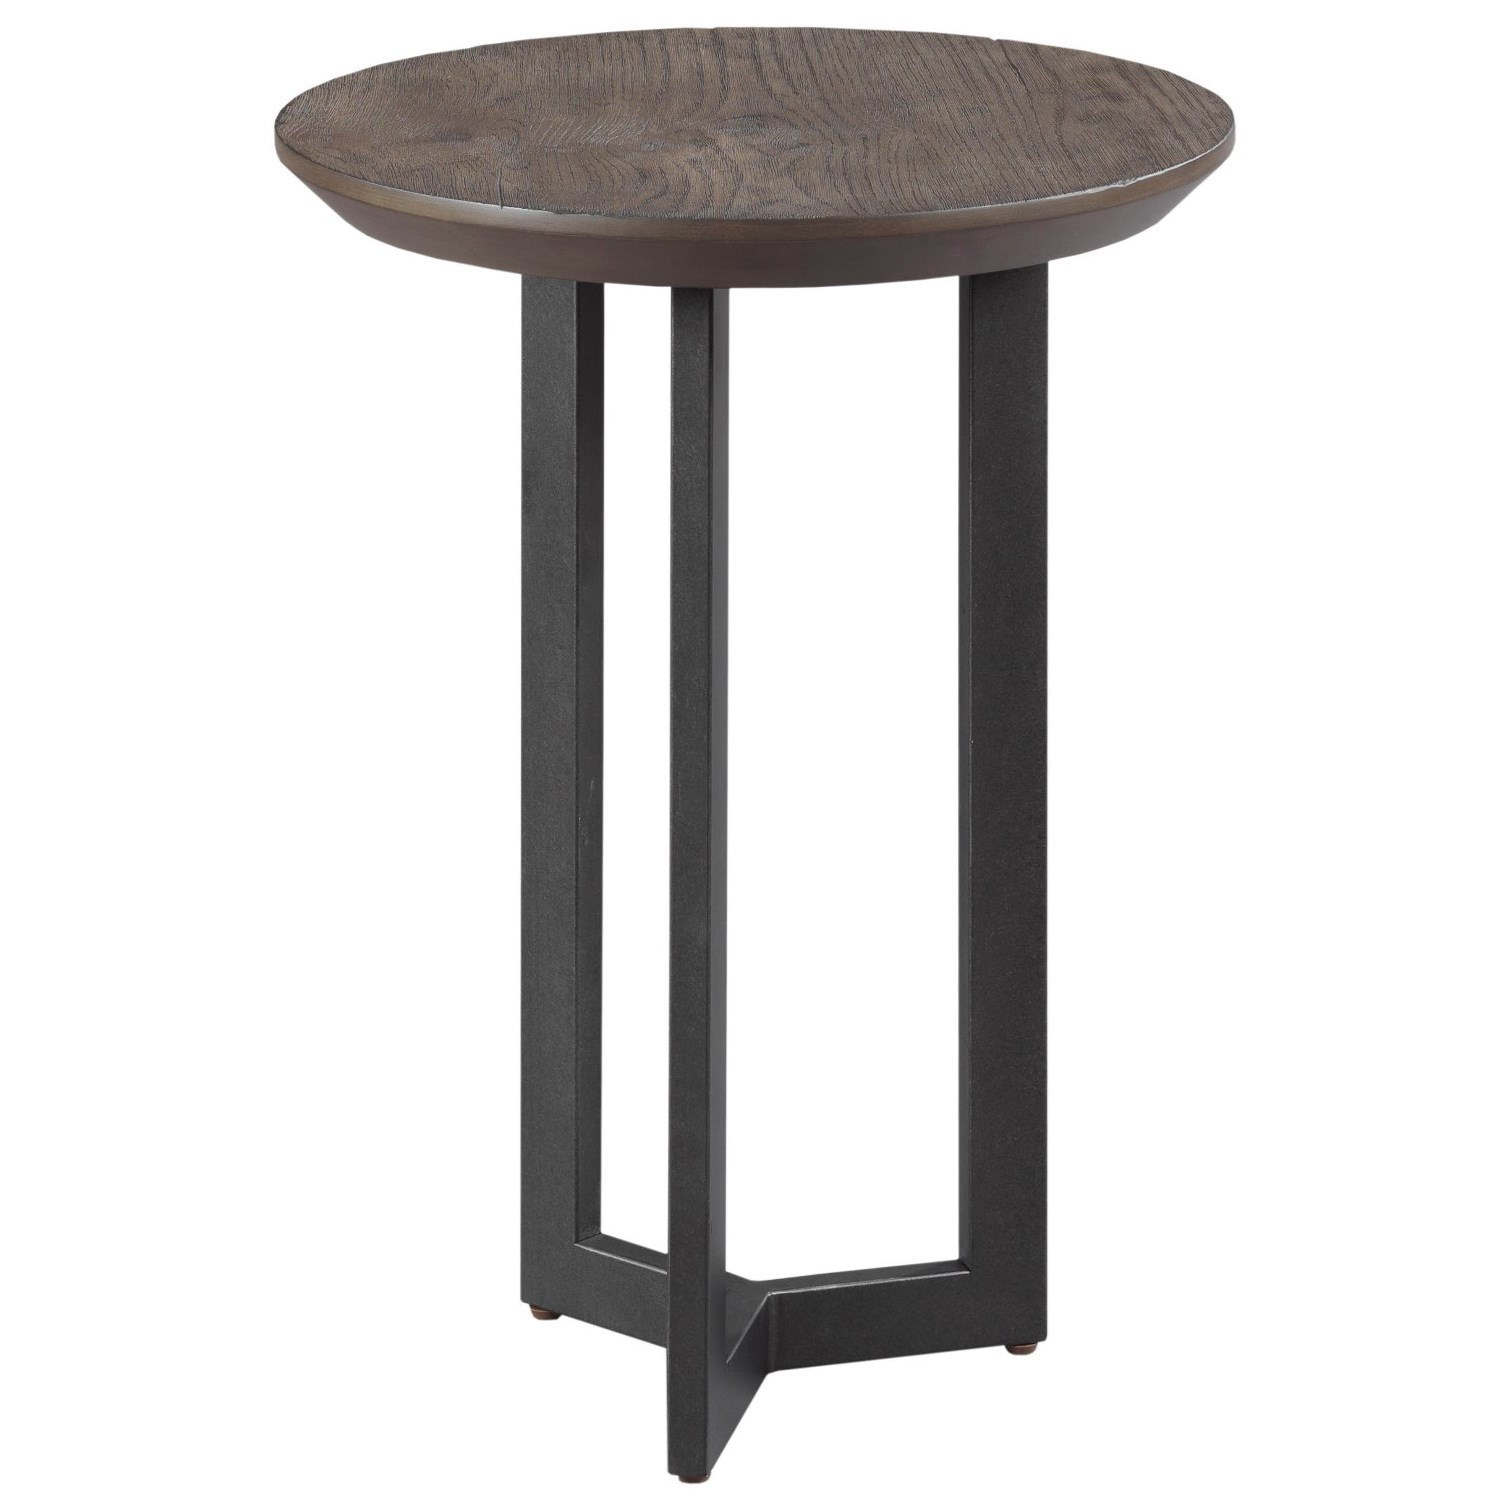 Graystone Round Chairside Table by Alexvale at Northeast Factory Direct